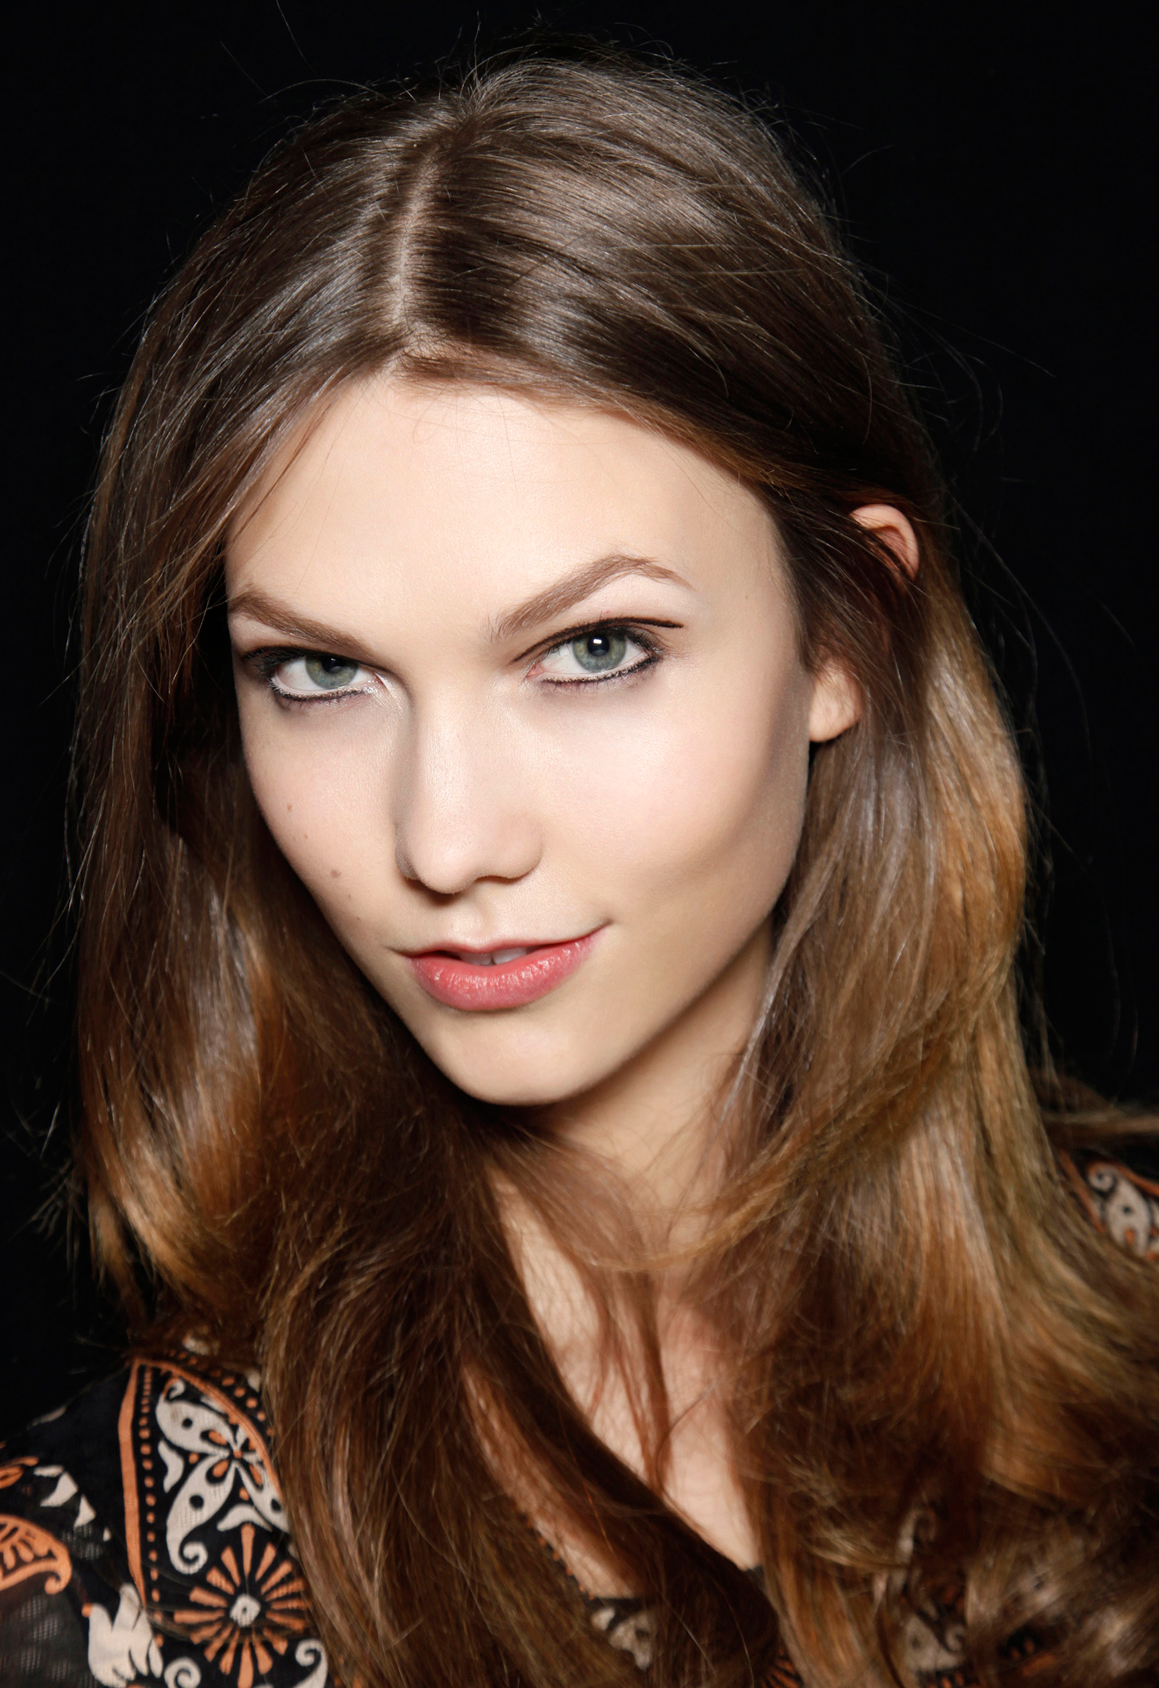 Asked and Answered: Should You Apply Eyeliner or Eye Shadow First?